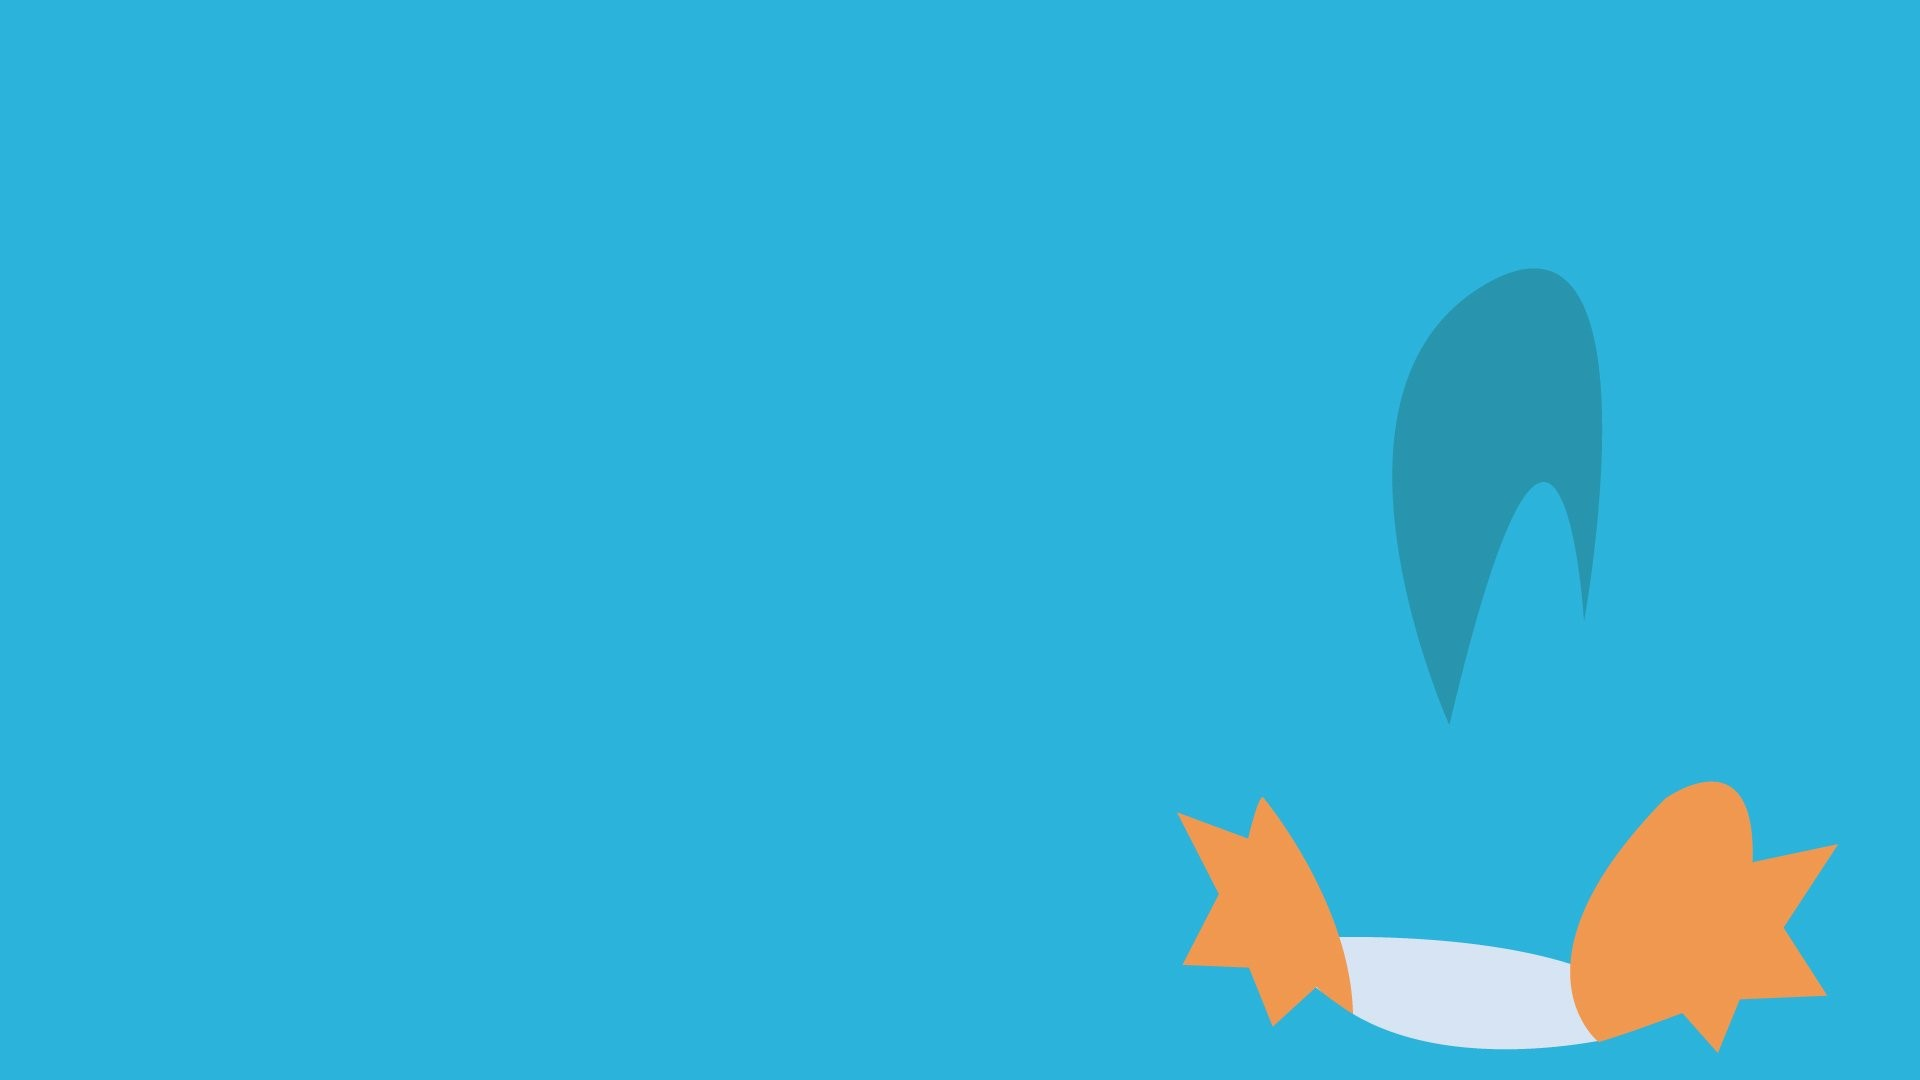 Mudkip Wallpapers 60 images 1920x1080